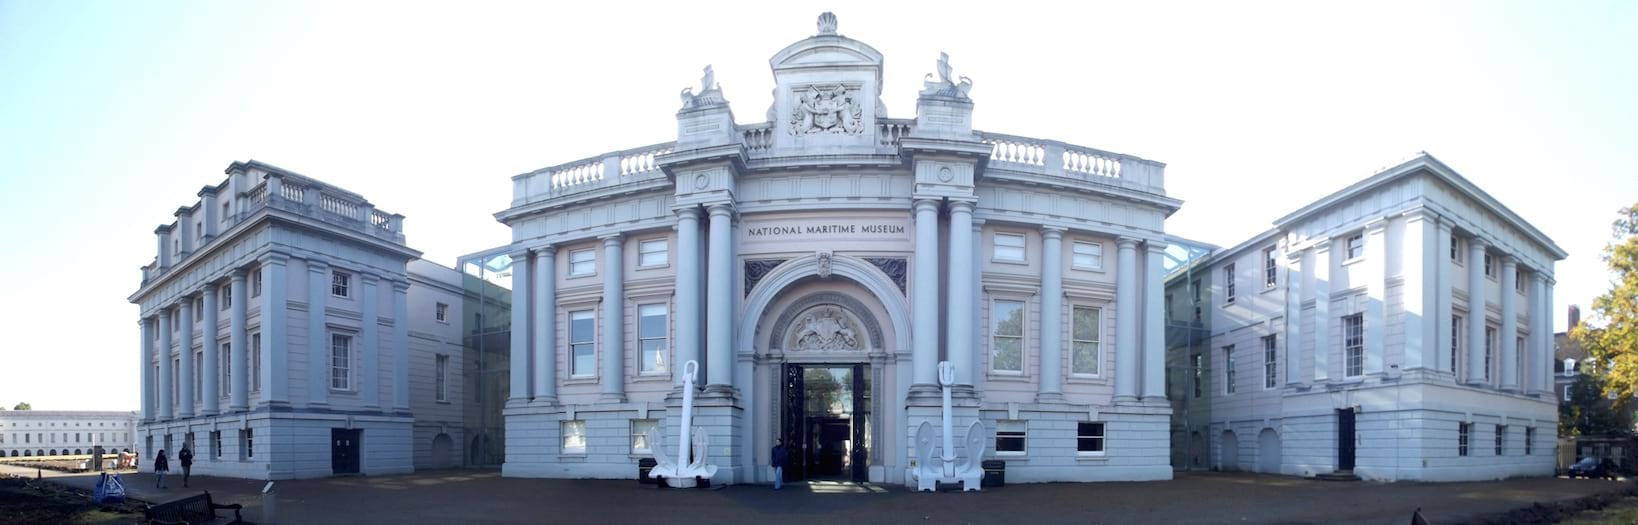 National Maritime Museum London, When to visit the National Maritime Museum: Tips to avoid the queues